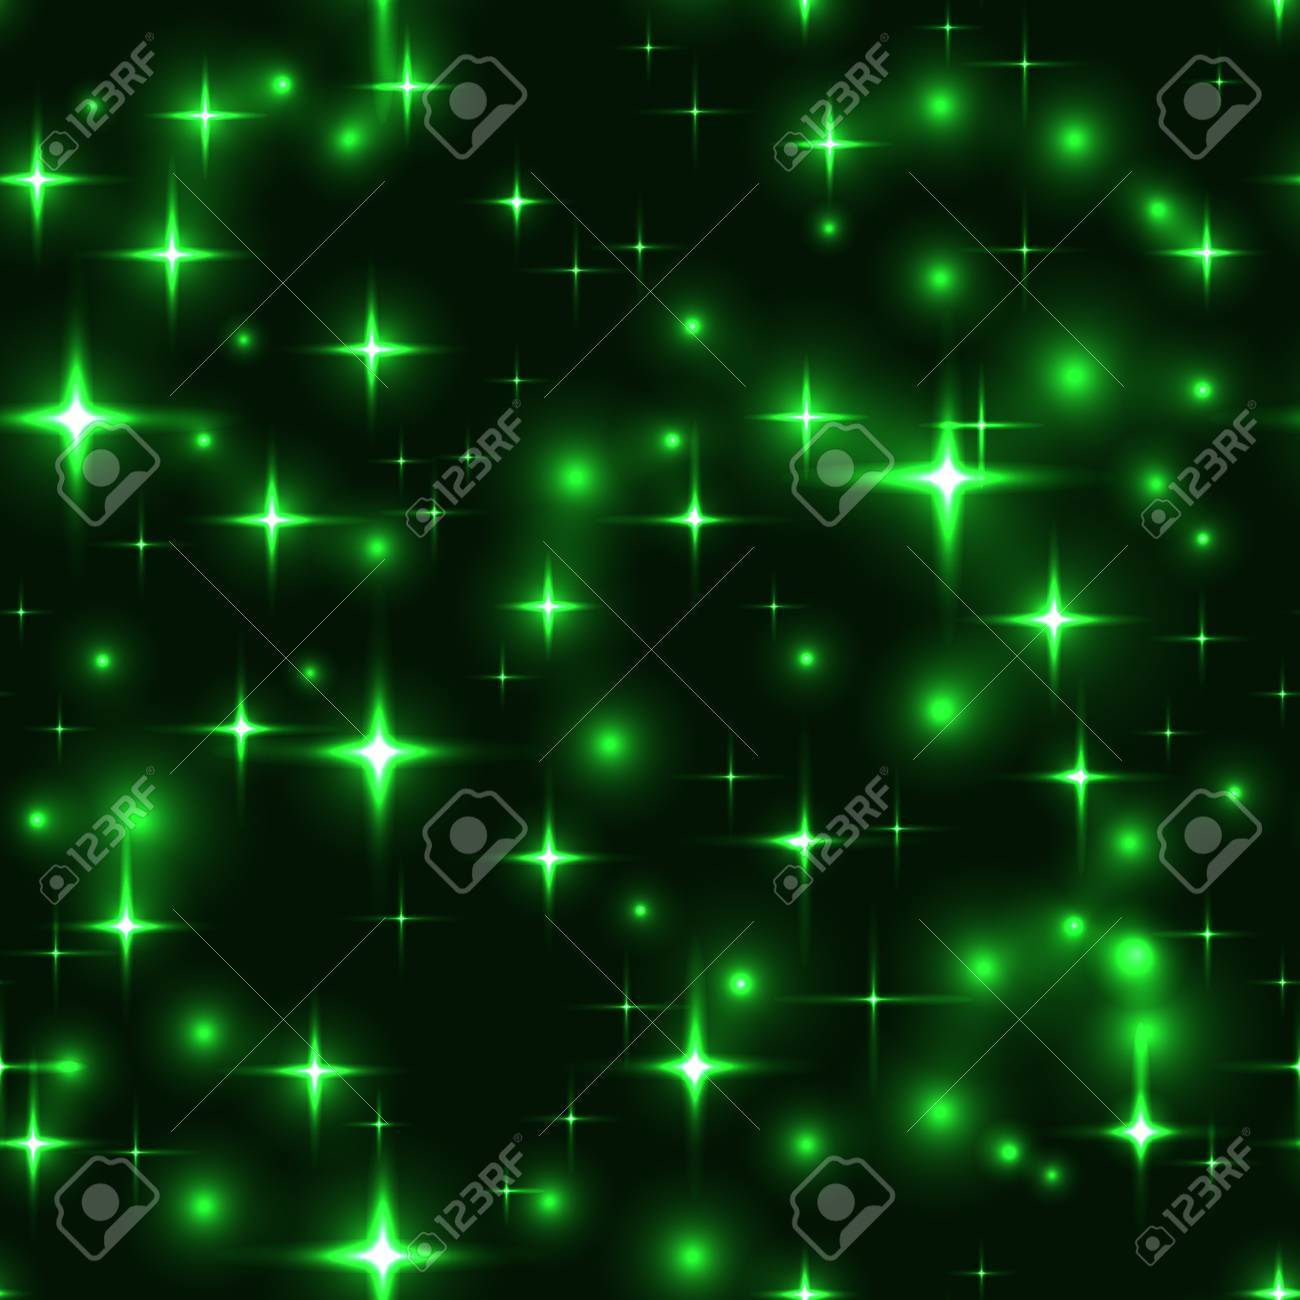 superb green stars dark seamless background gorgeous glittering